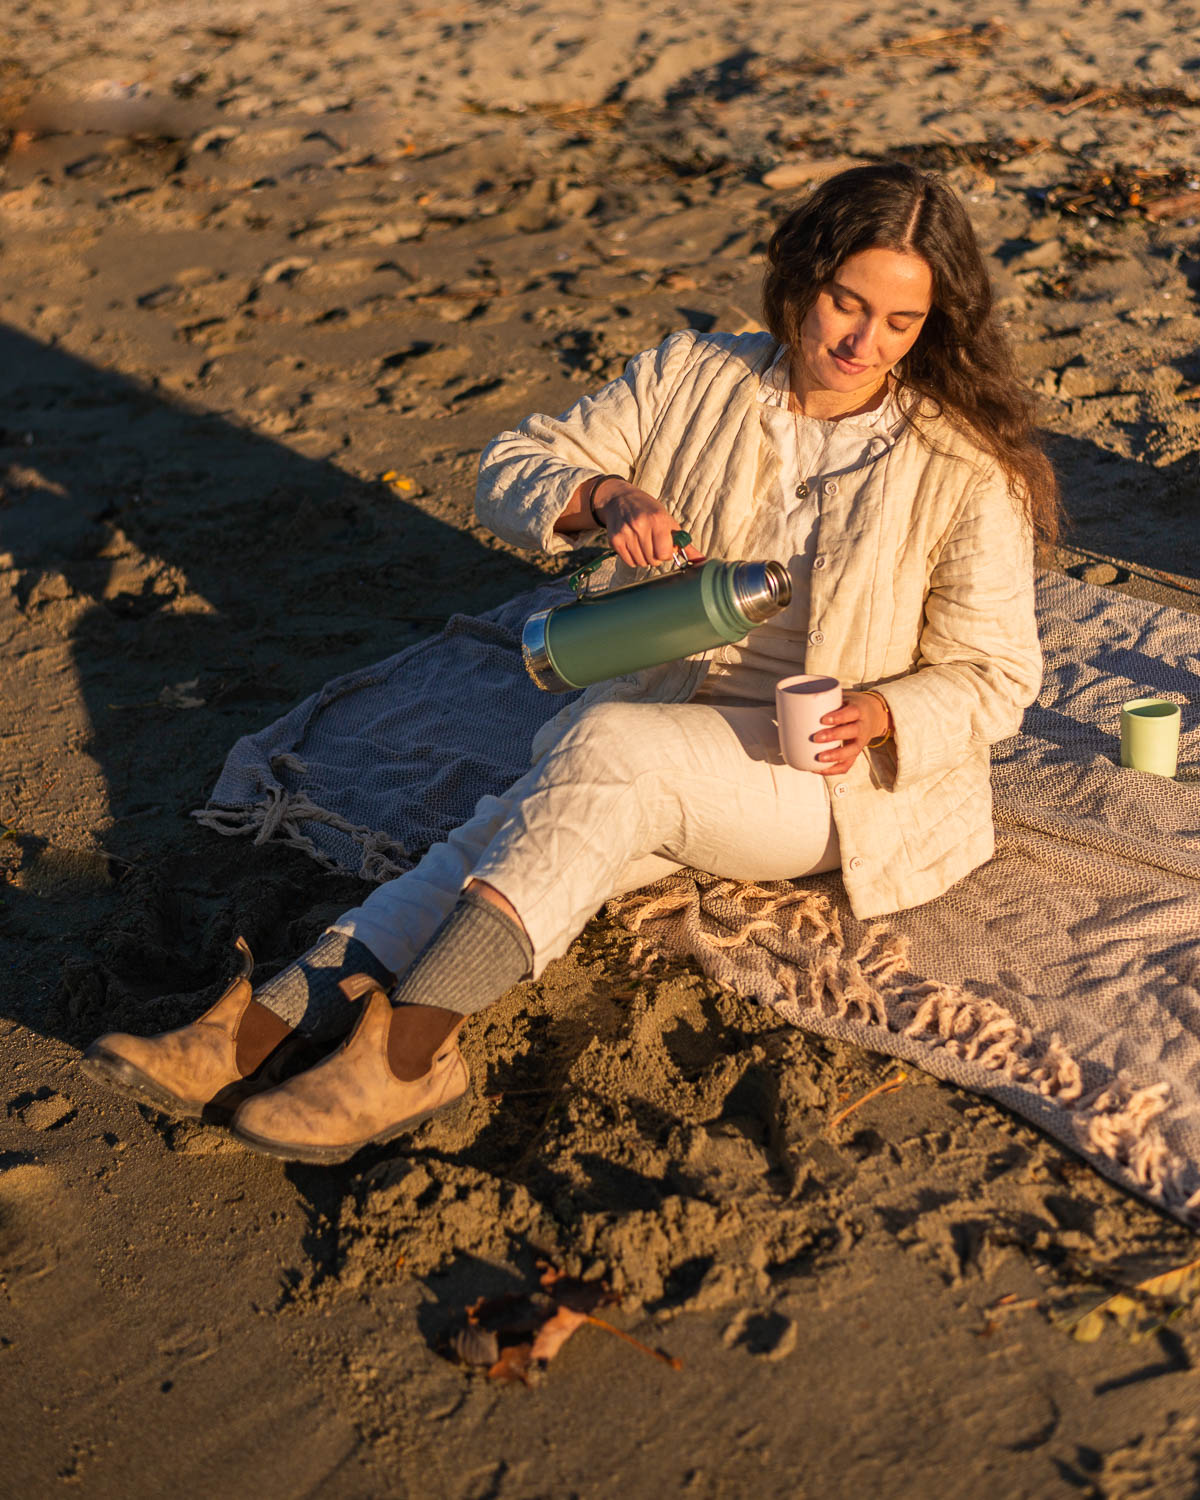 Women in a white outfit sitting on a blanket on a beach pouring coffee from a thermos.